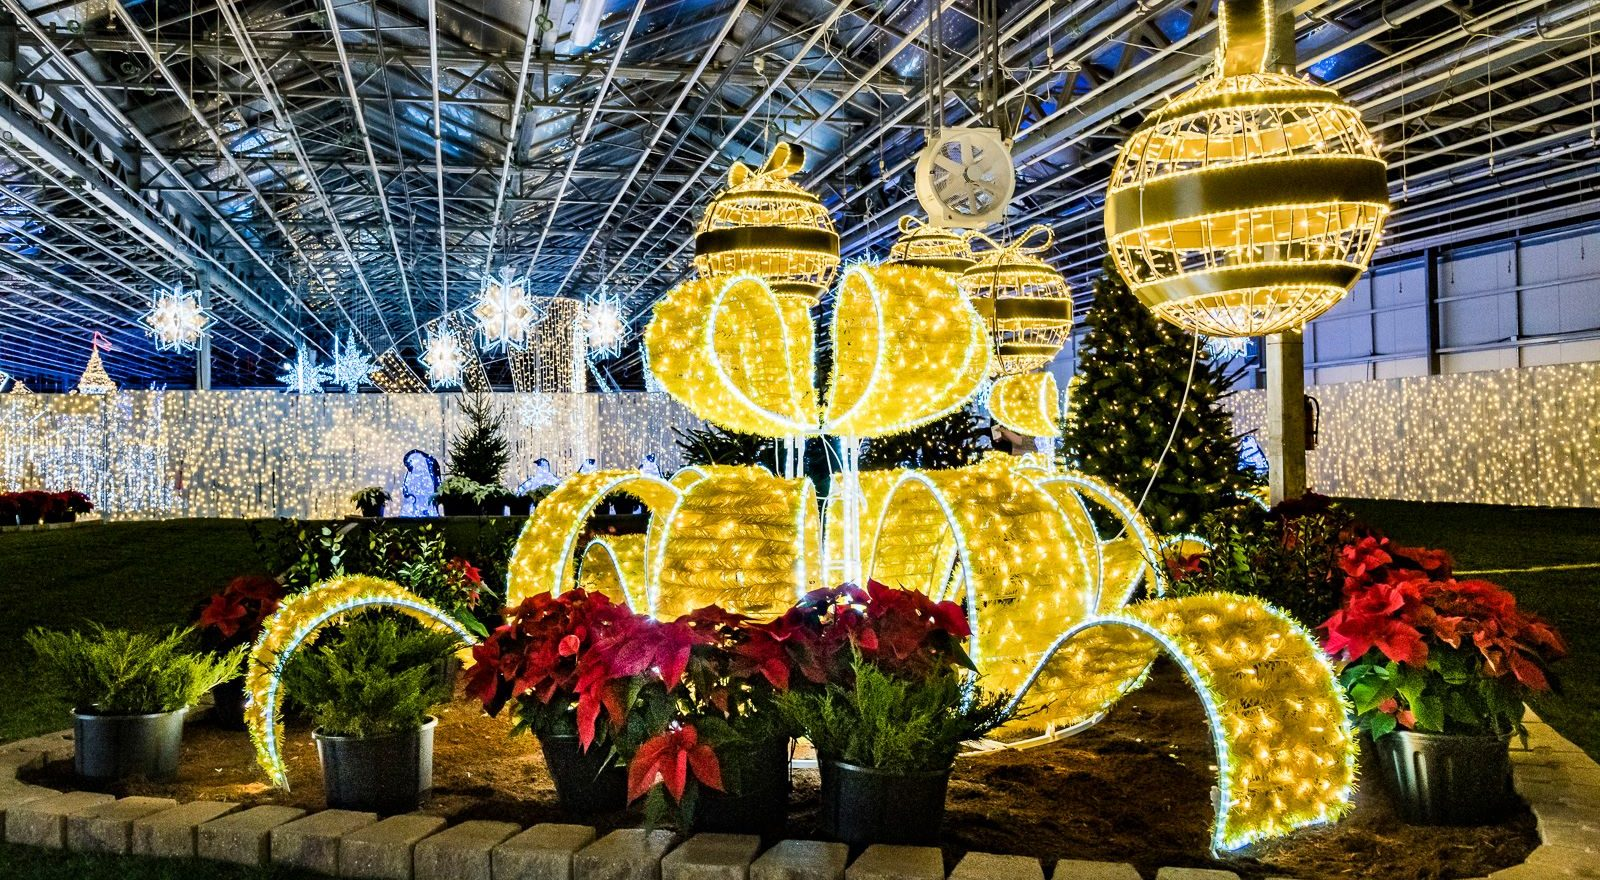 Christmas In Vancouver 2019 The world's largest indoor Christmas festival is coming to